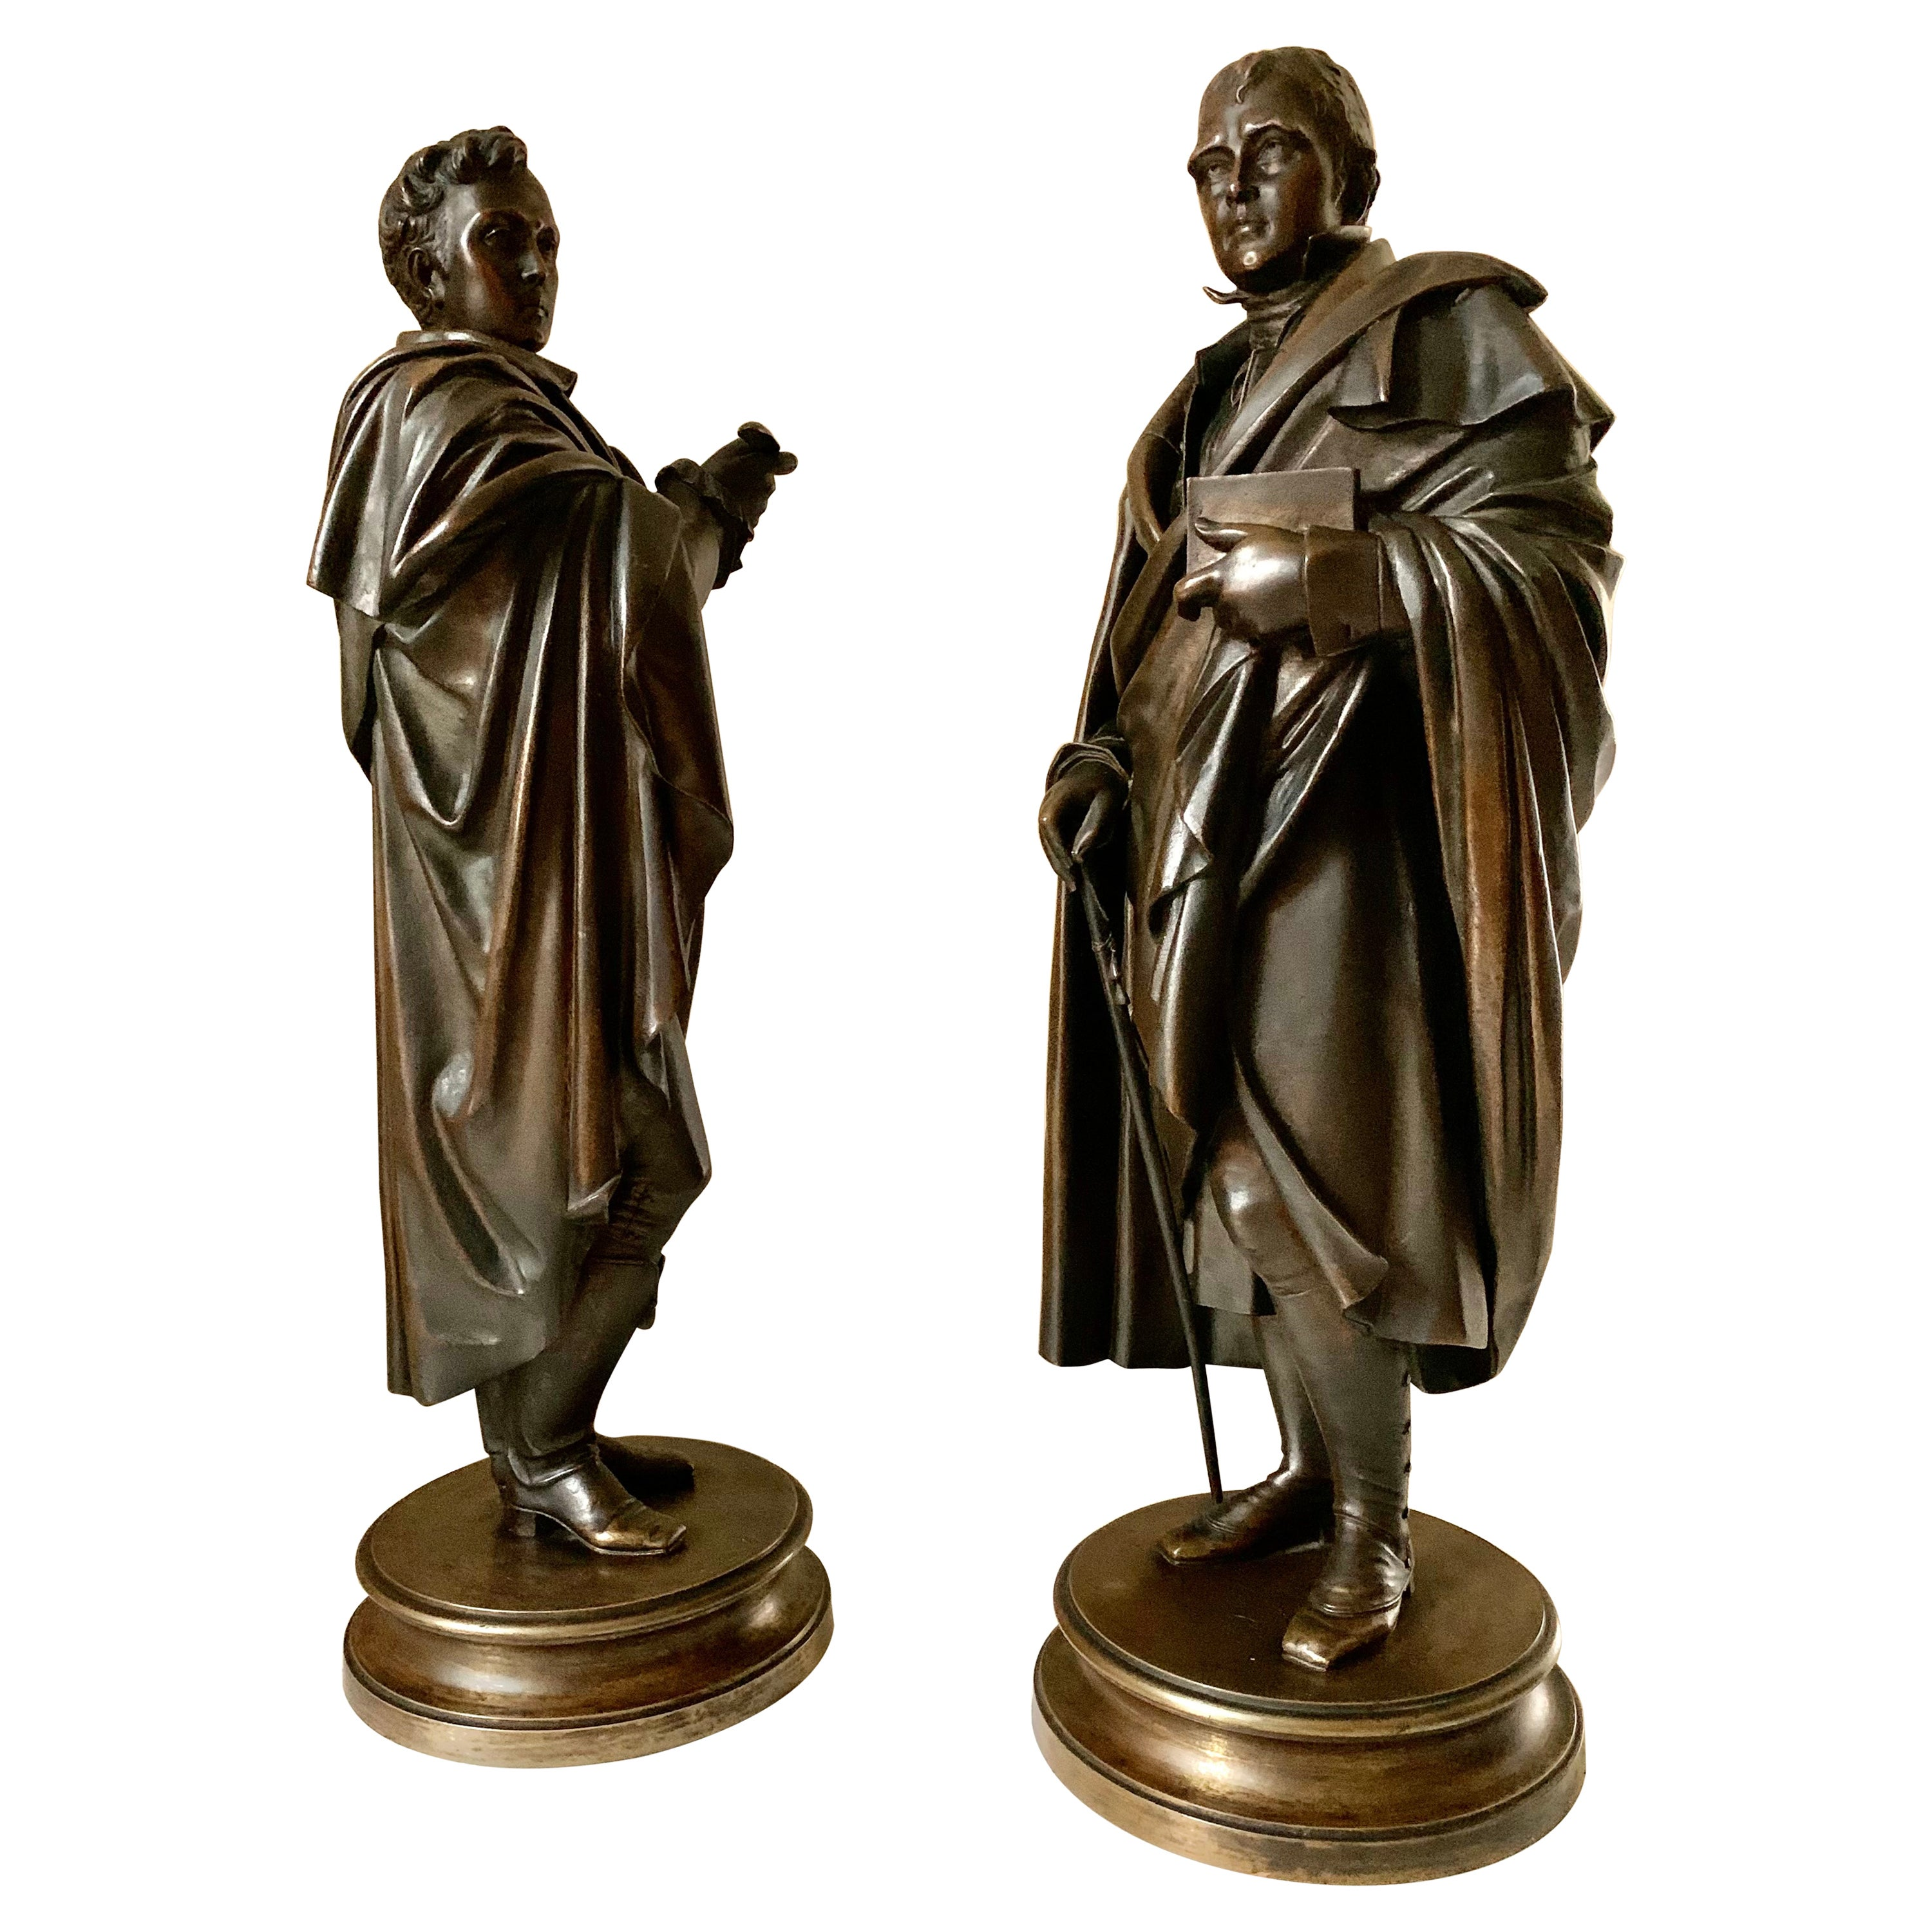 Antique Patinated Bronze Sculptures of Lord Byron and Sir Walter Scott